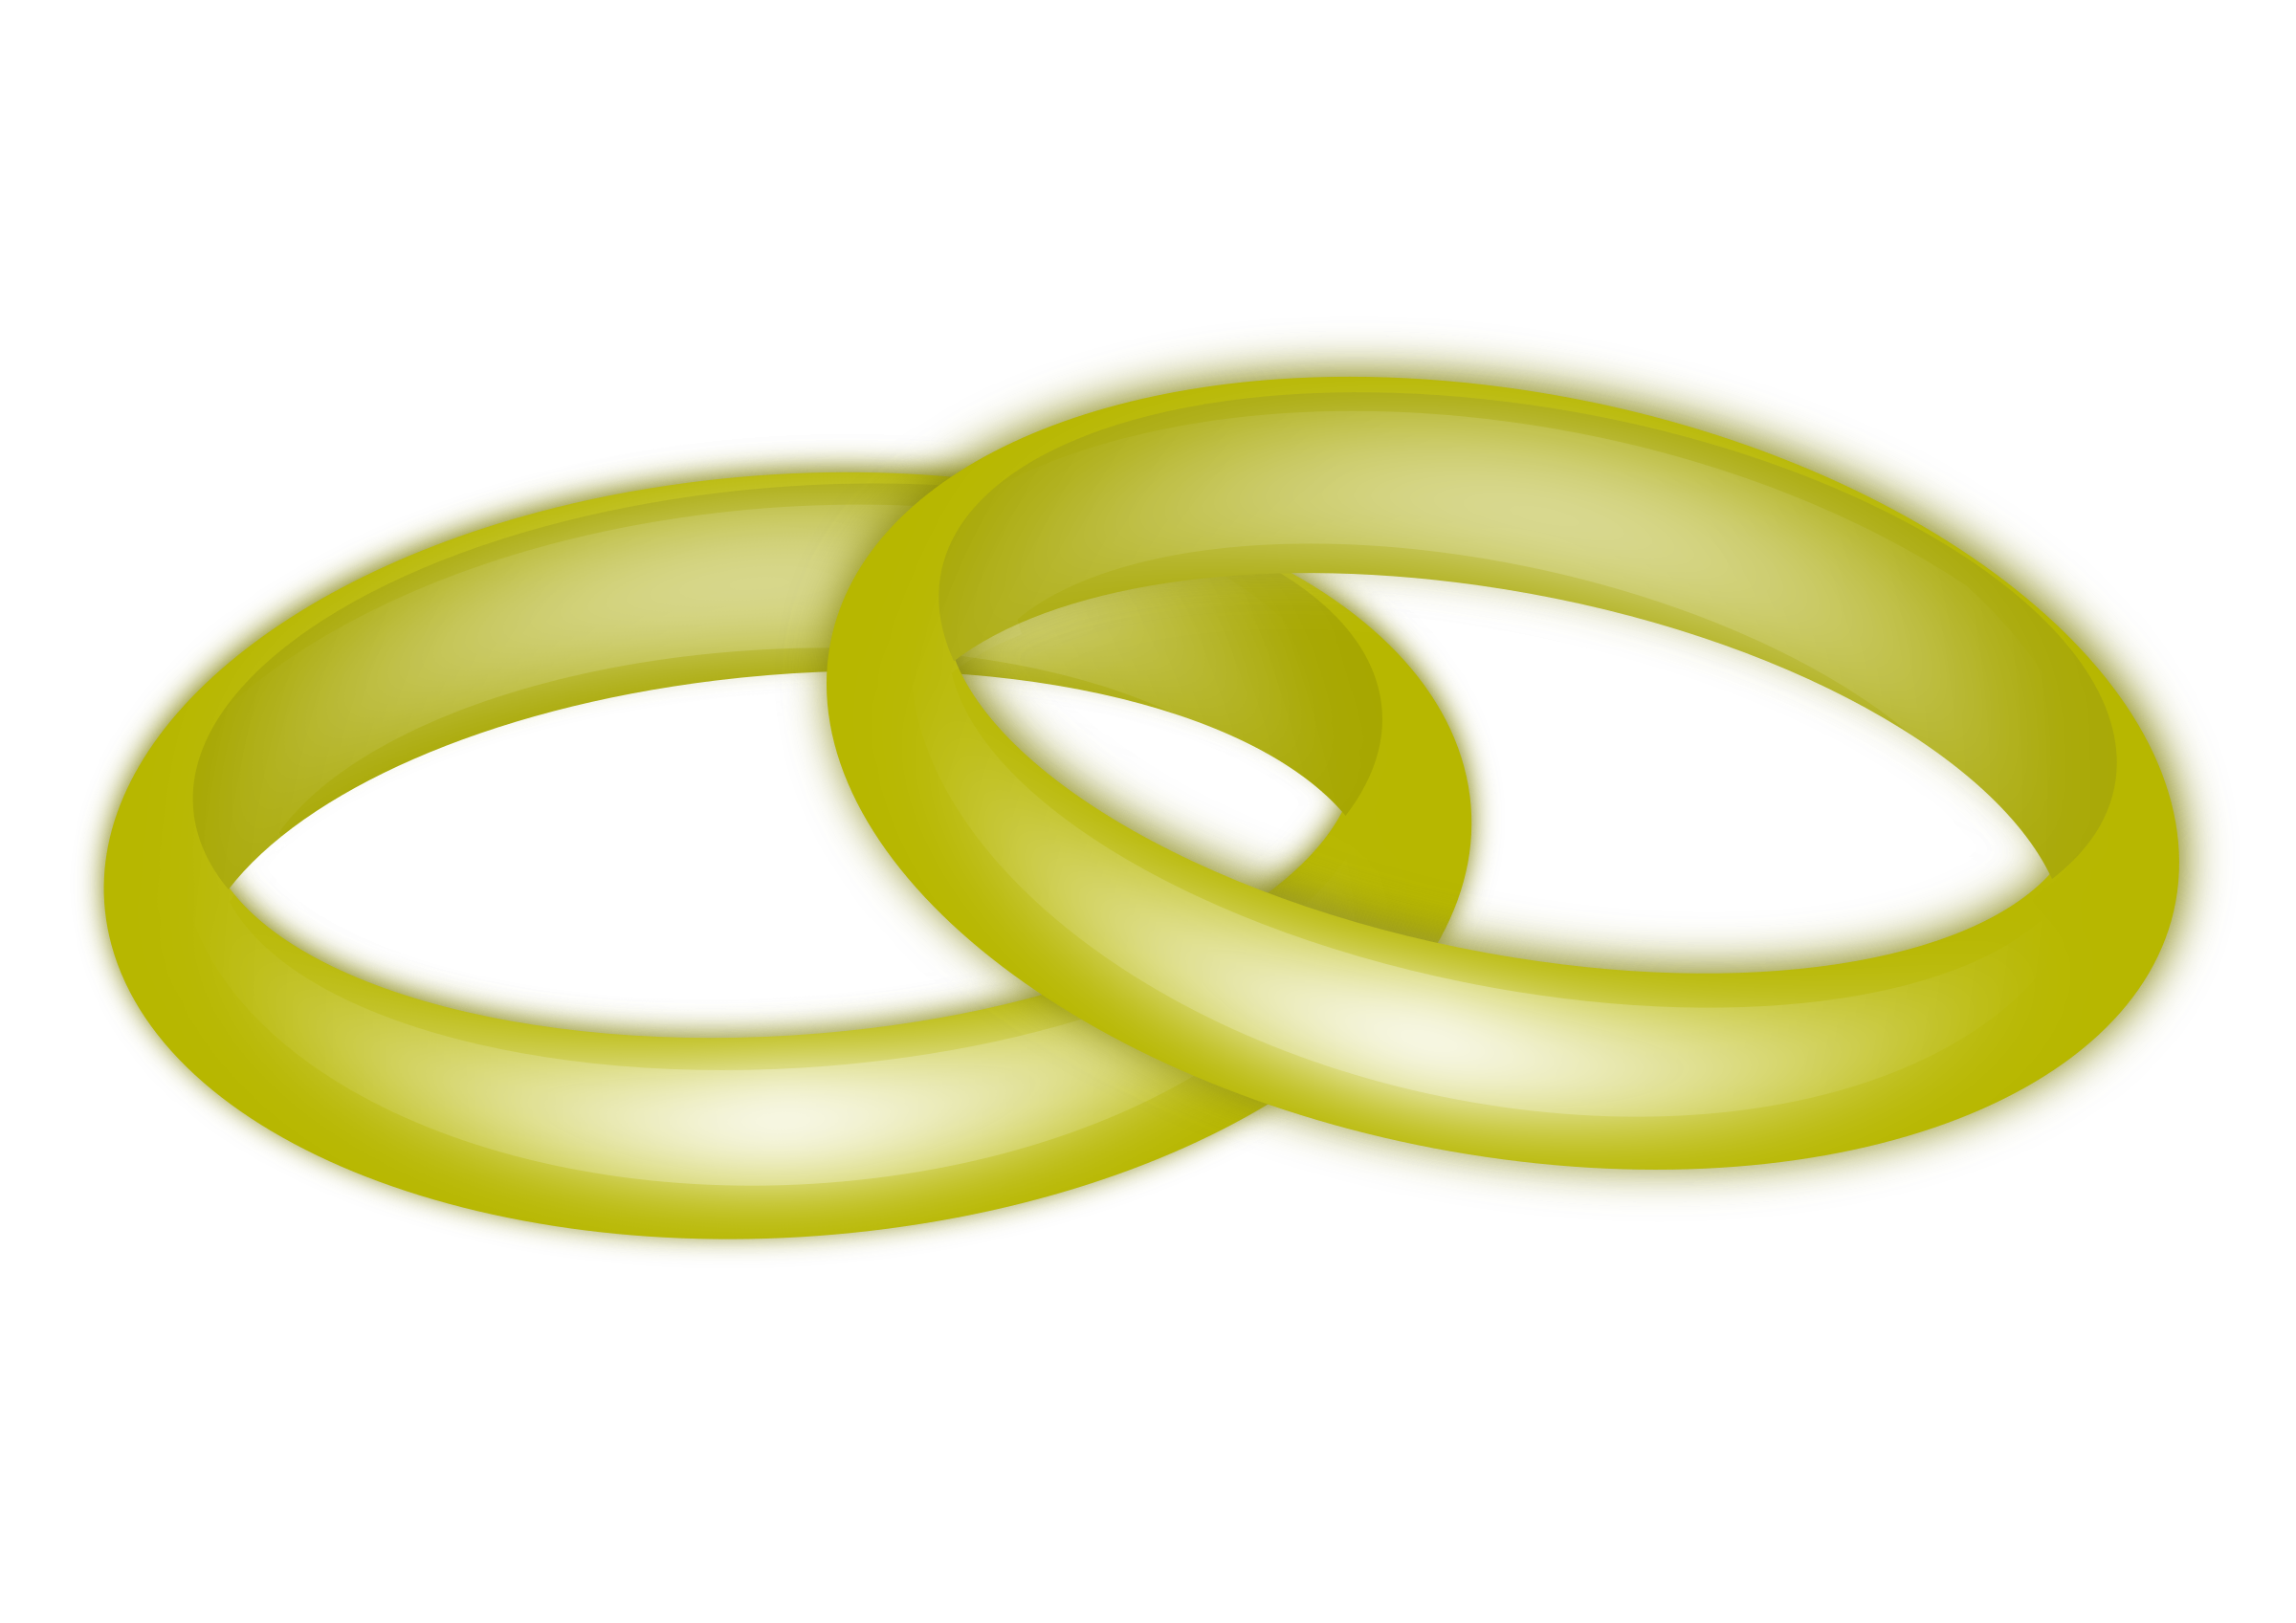 Marriage Rings Clipart